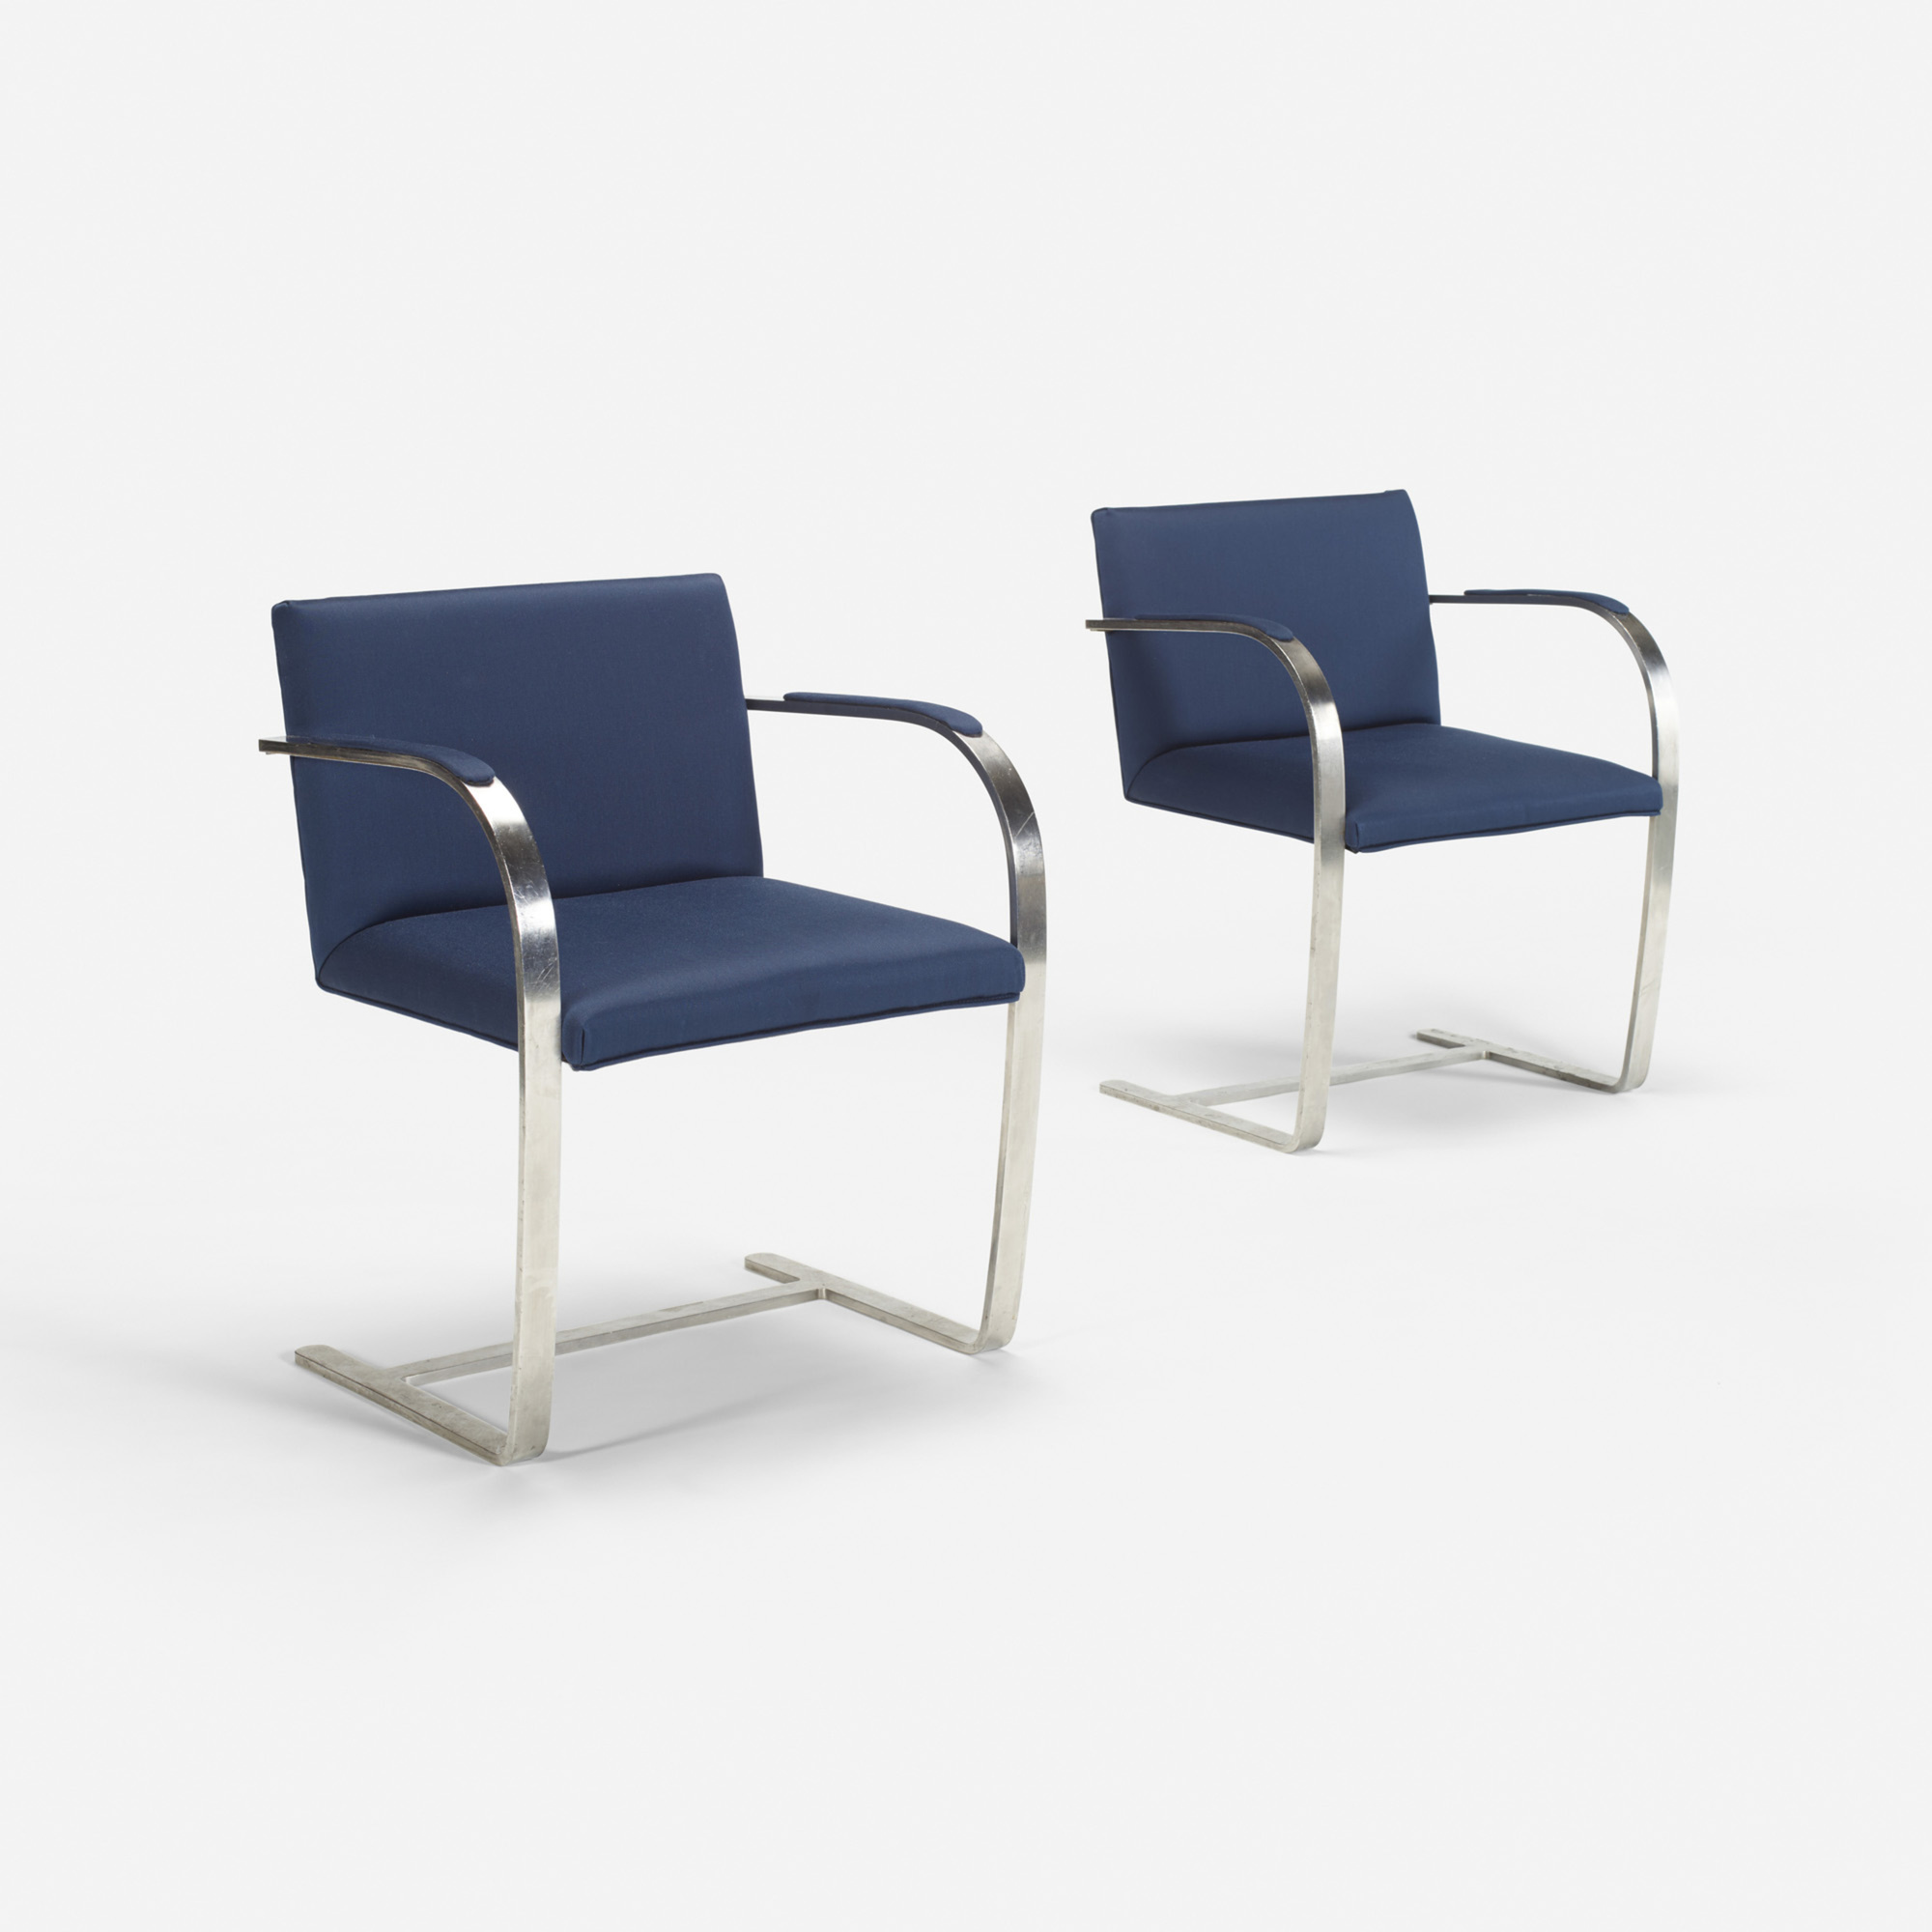 209: Ludwig Mies van der Rohe / Brno chairs from The Four Seasons, pair (1 of 1)